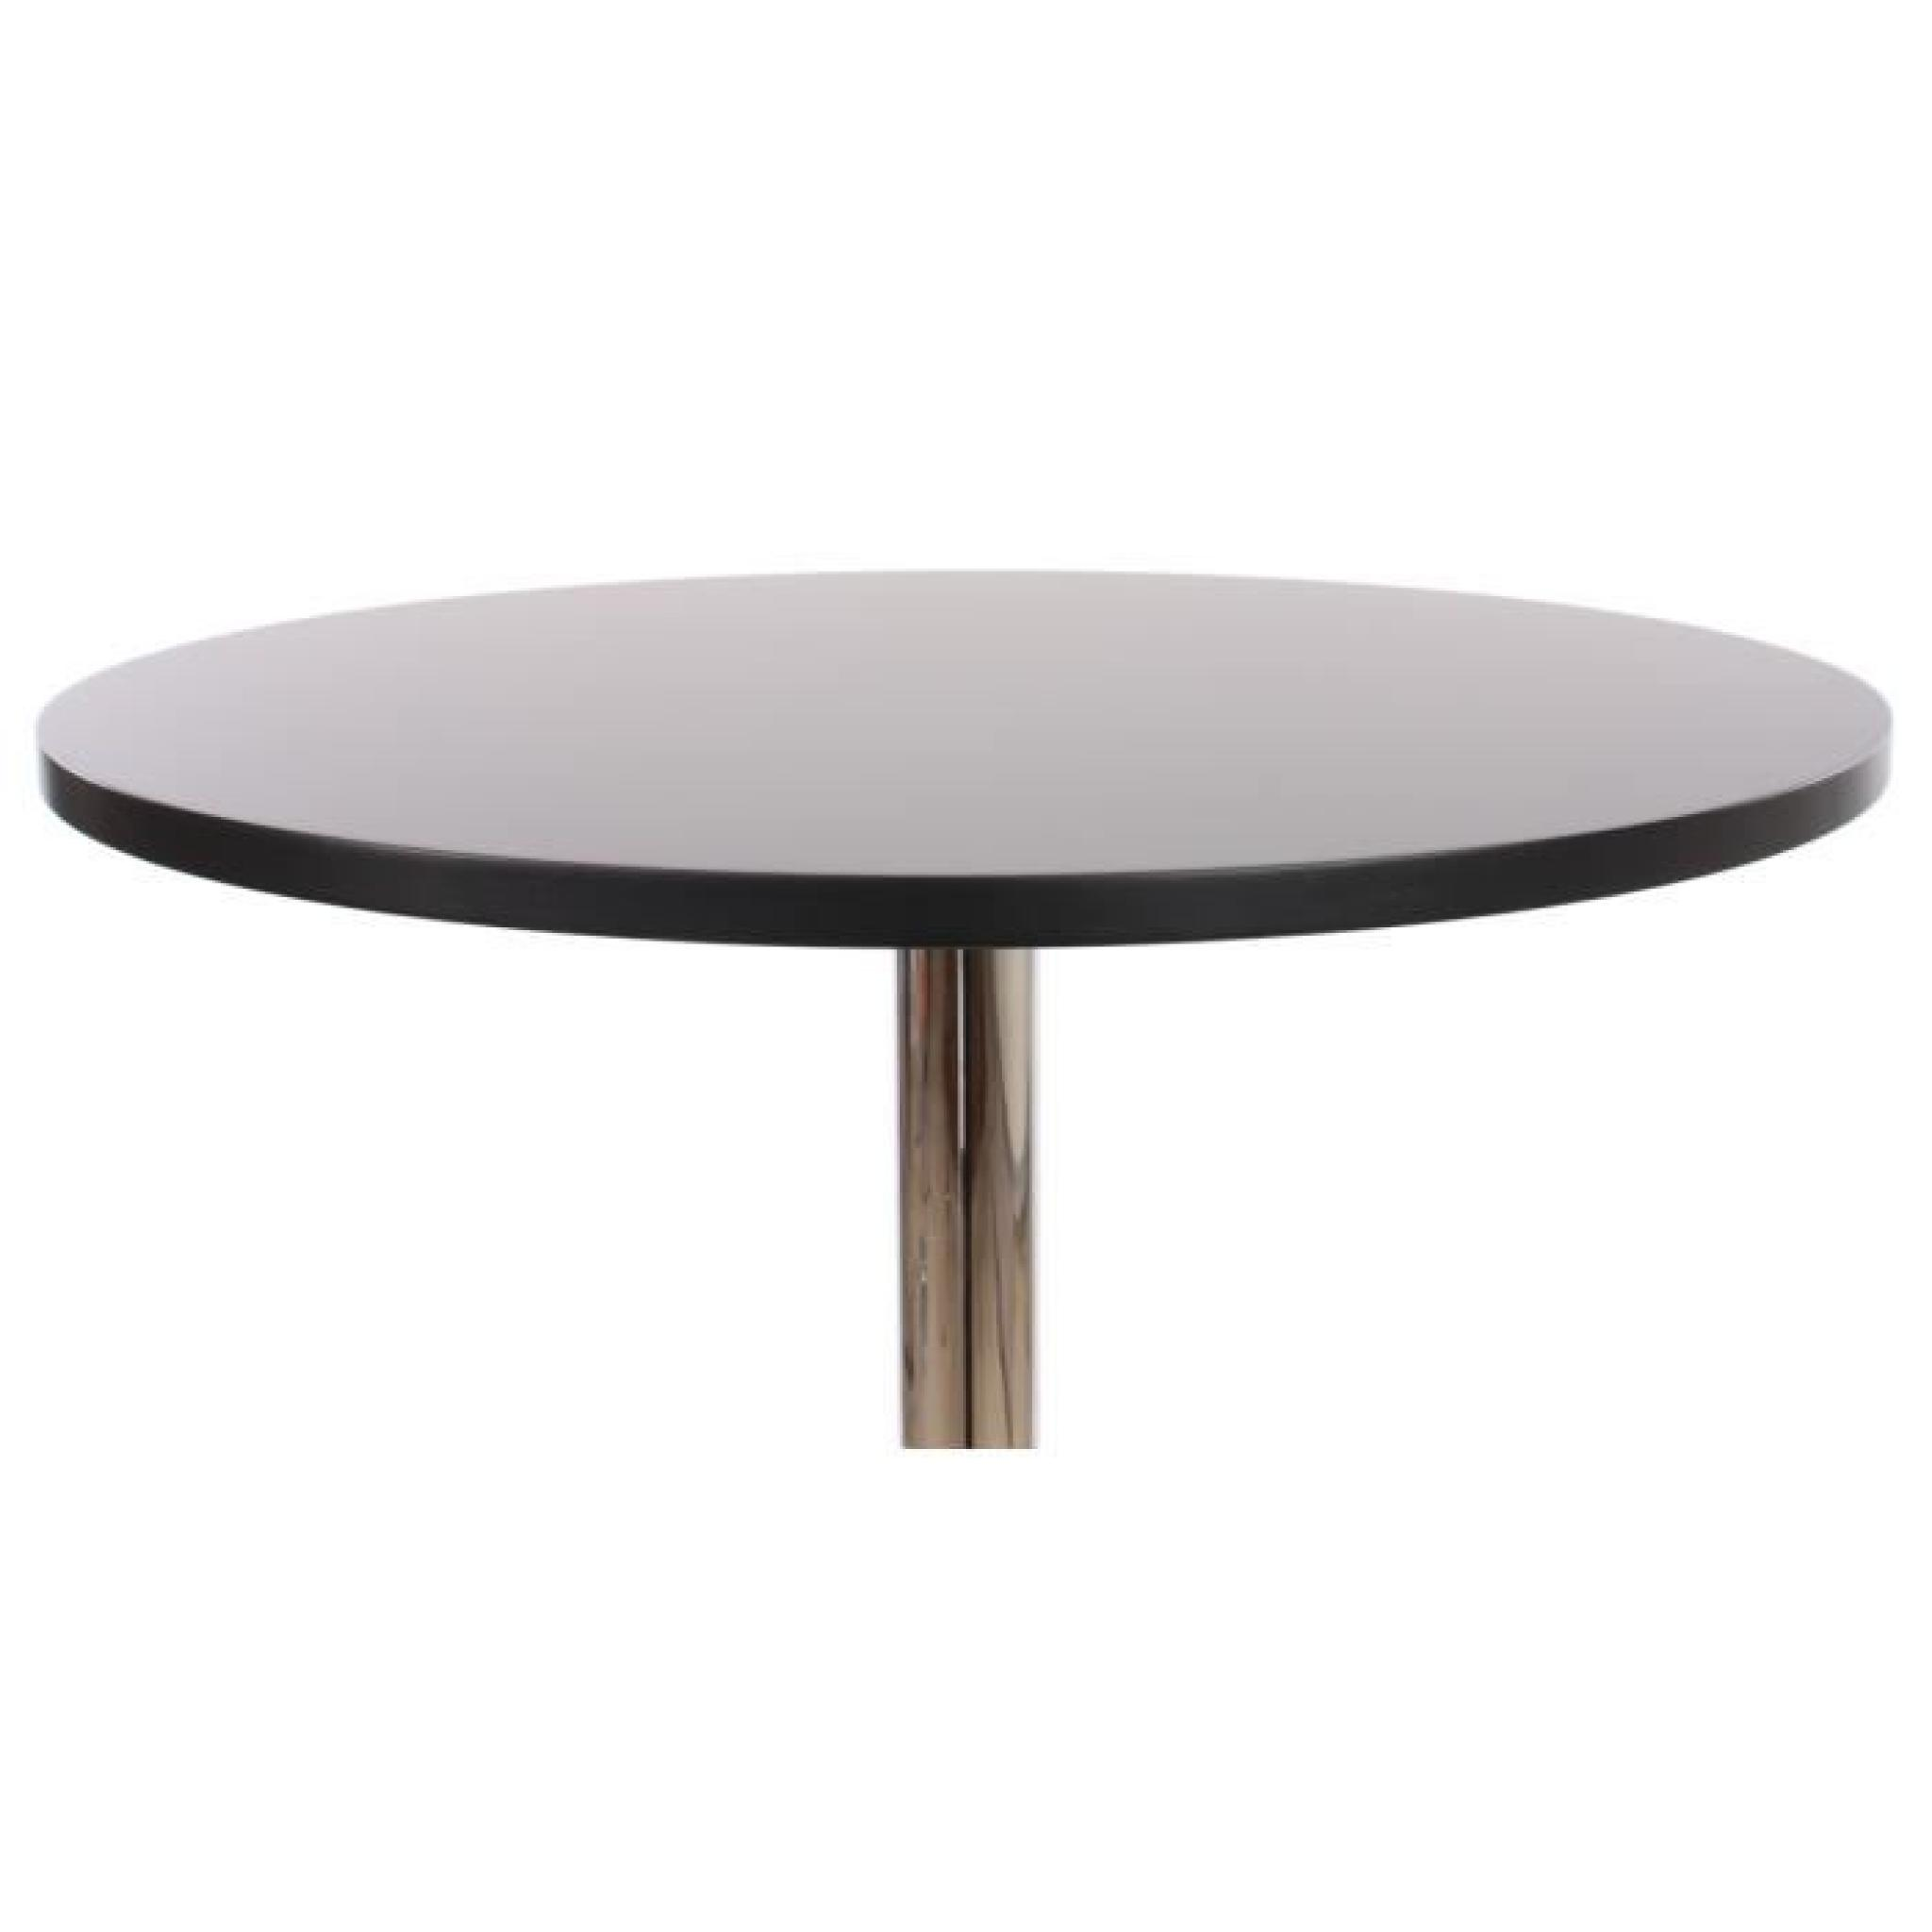 Table de bar table haute bari ronde avec repose pied for Pieds de table design pas cher